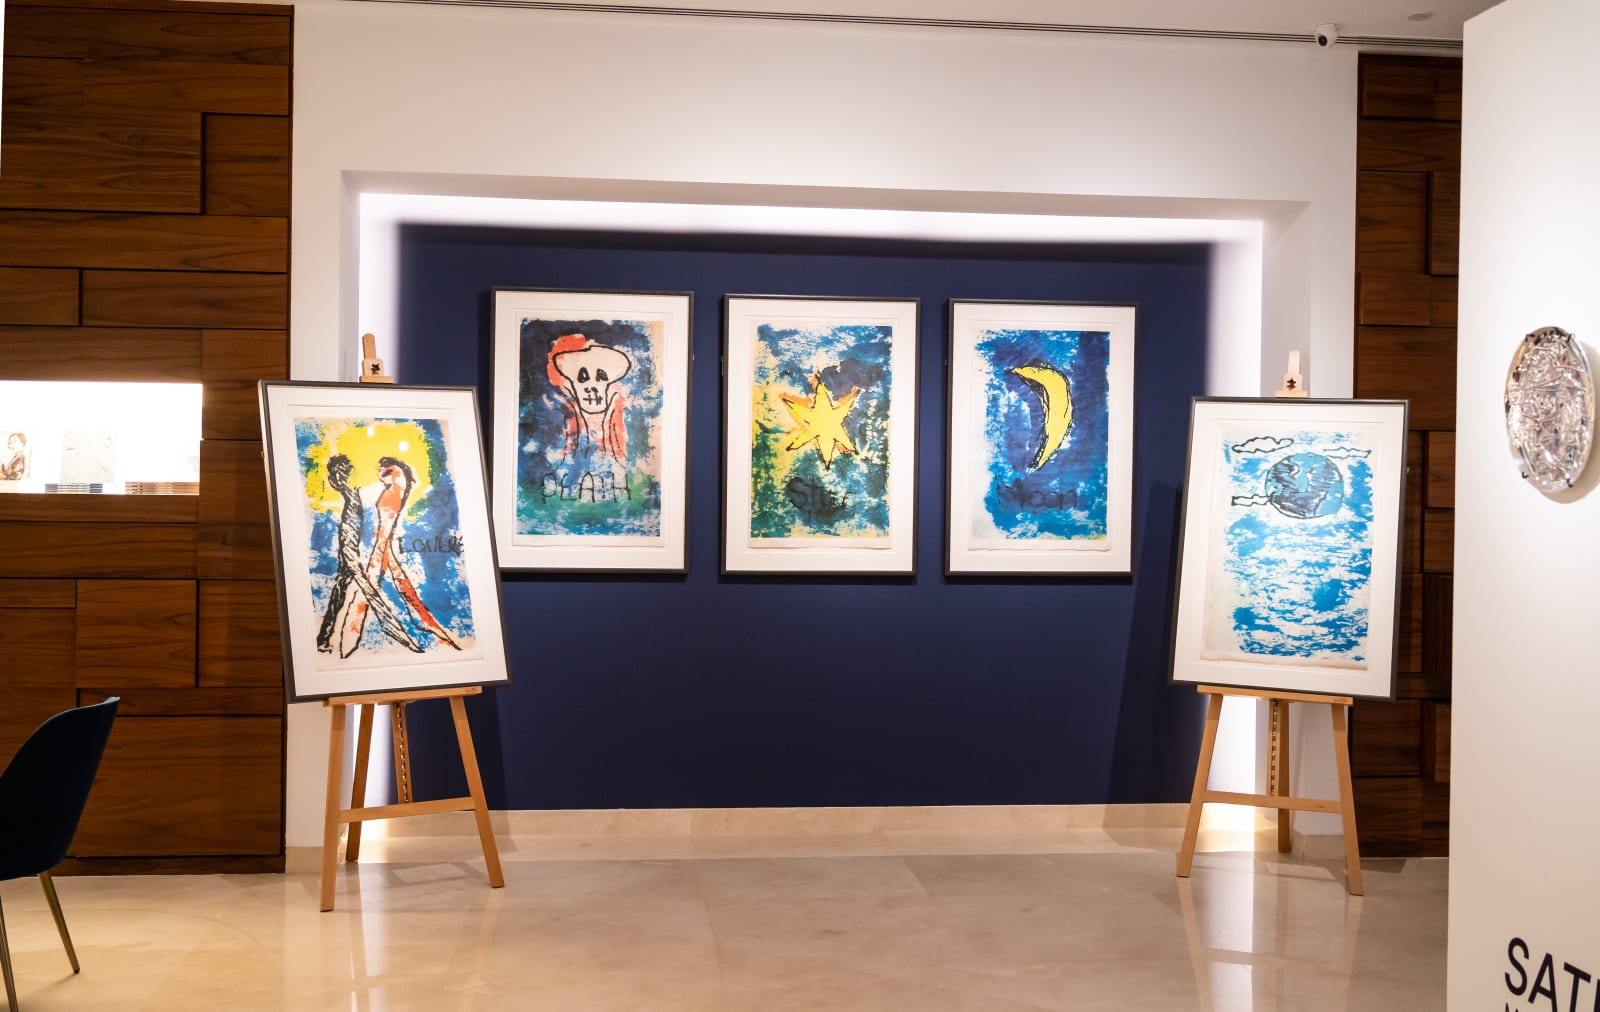 DAVID BOWIE (British, 1947 – 2016) Arcane Series | Lovers, Death, Star, Moon, Earth 1975 hand-pulled silkscreen prints on Japanese paper 86.5 x 58.5 cm / 34 x 23 in. (each) Edition of 50 signed and dated l.l. 25/50 Bowie Nov 75